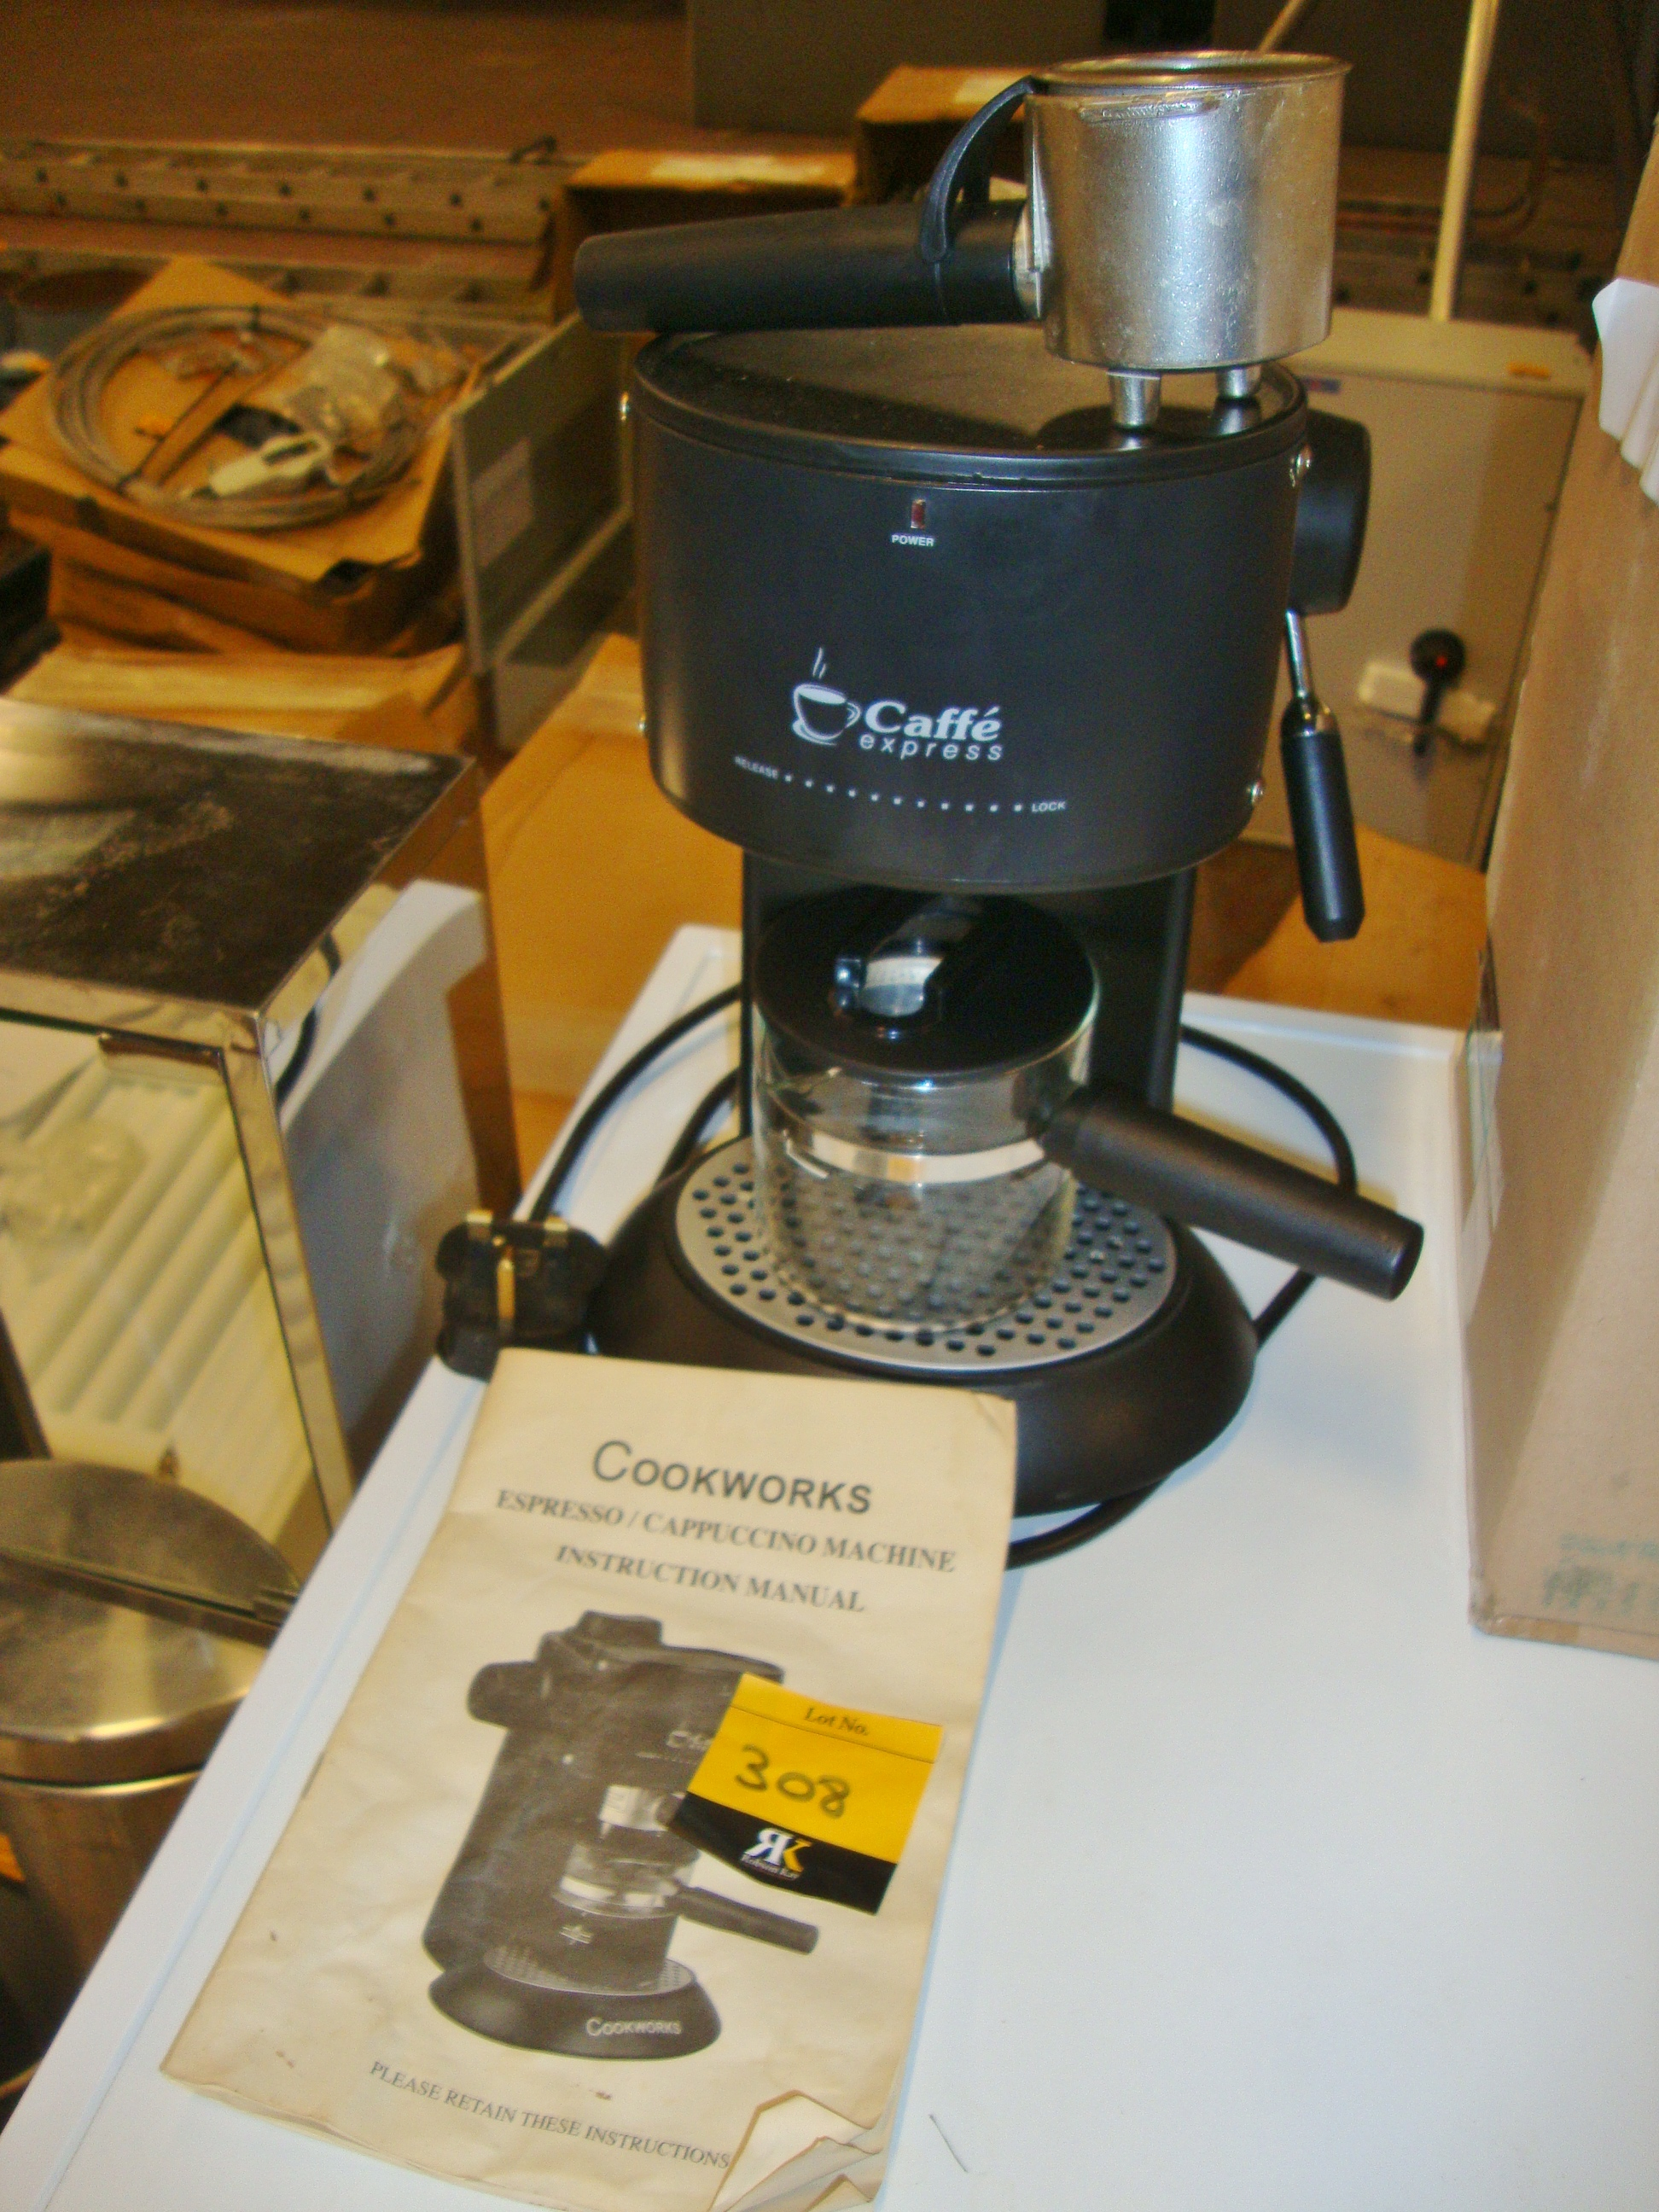 Cookworks Café Express Coffee Machine With Manual